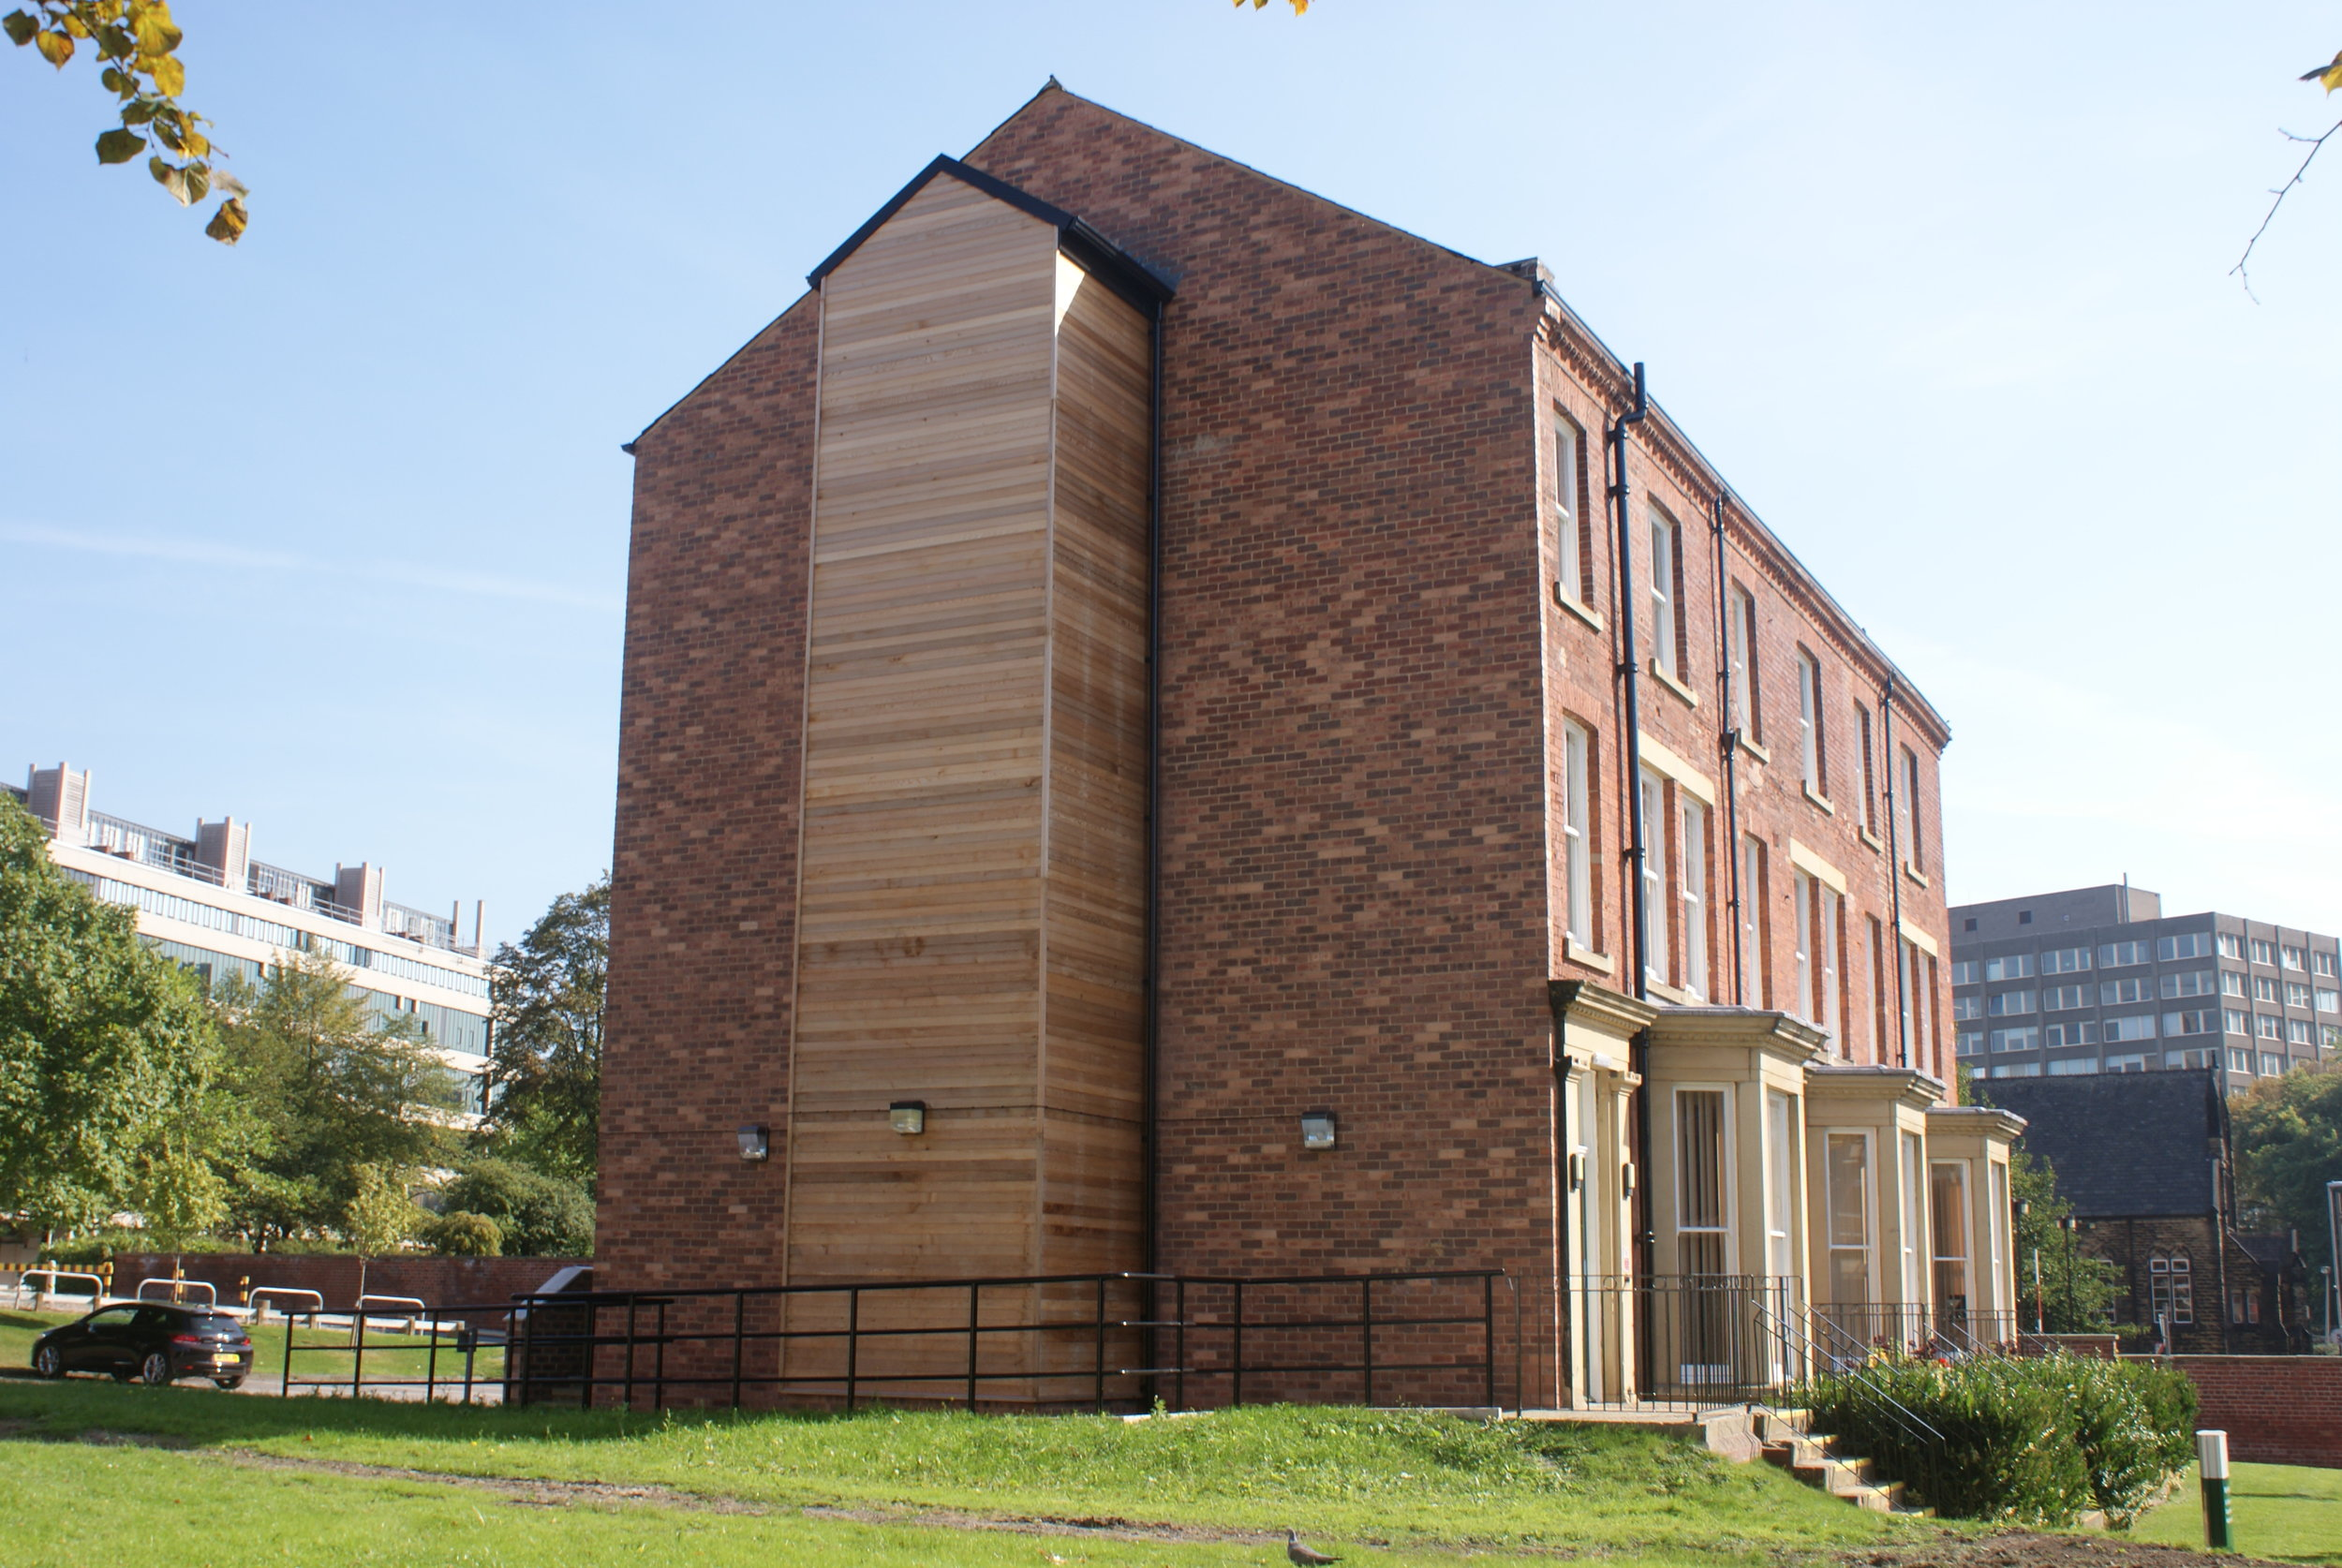 The new lift shaft was clad in cedar wood boarding to provide a contrast to the brickwork structure.